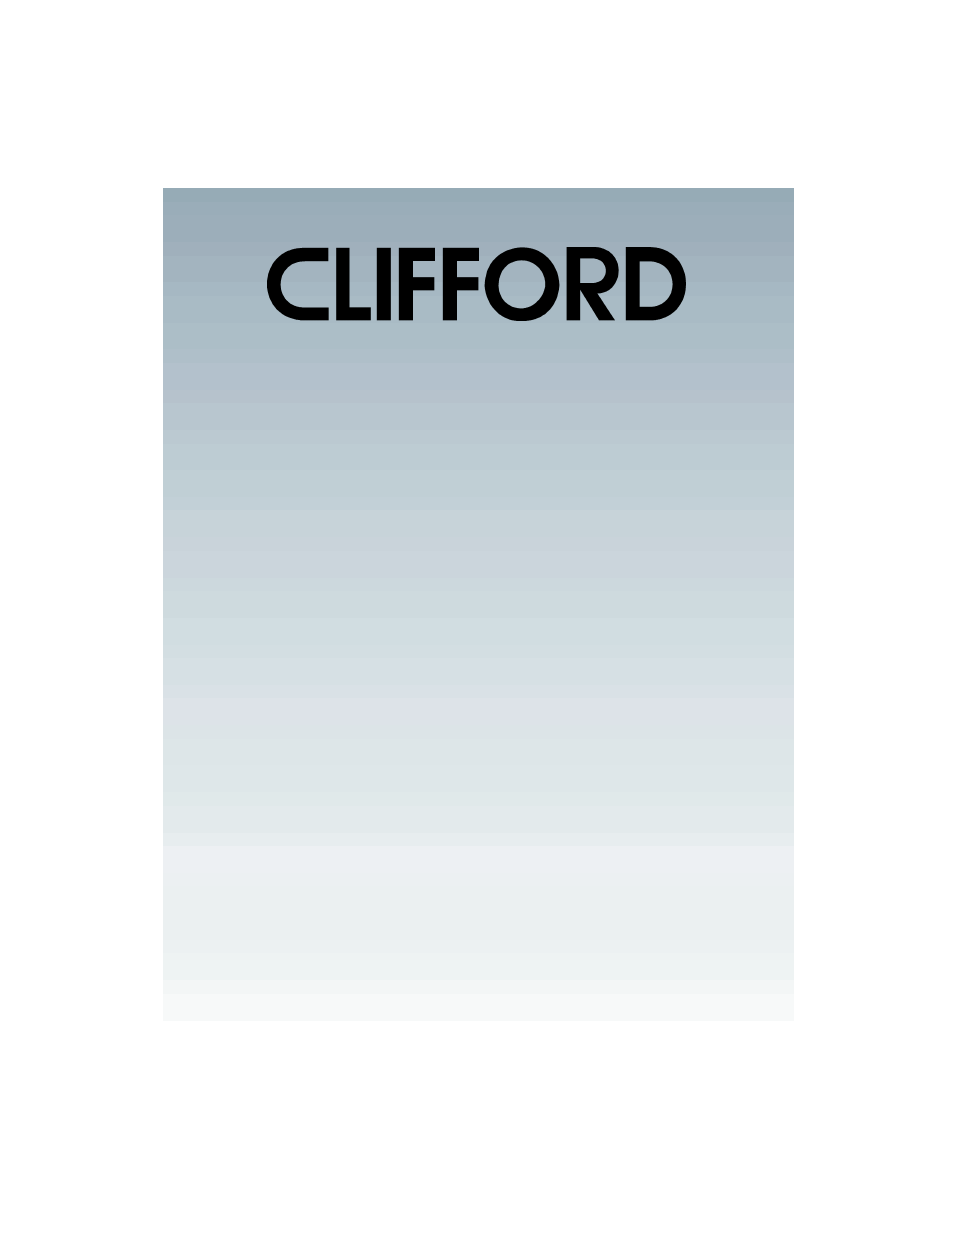 Clifford alarm installation guide user manuals array clifford concept 40 user manual 25 pages rh manualsdir fandeluxe Gallery